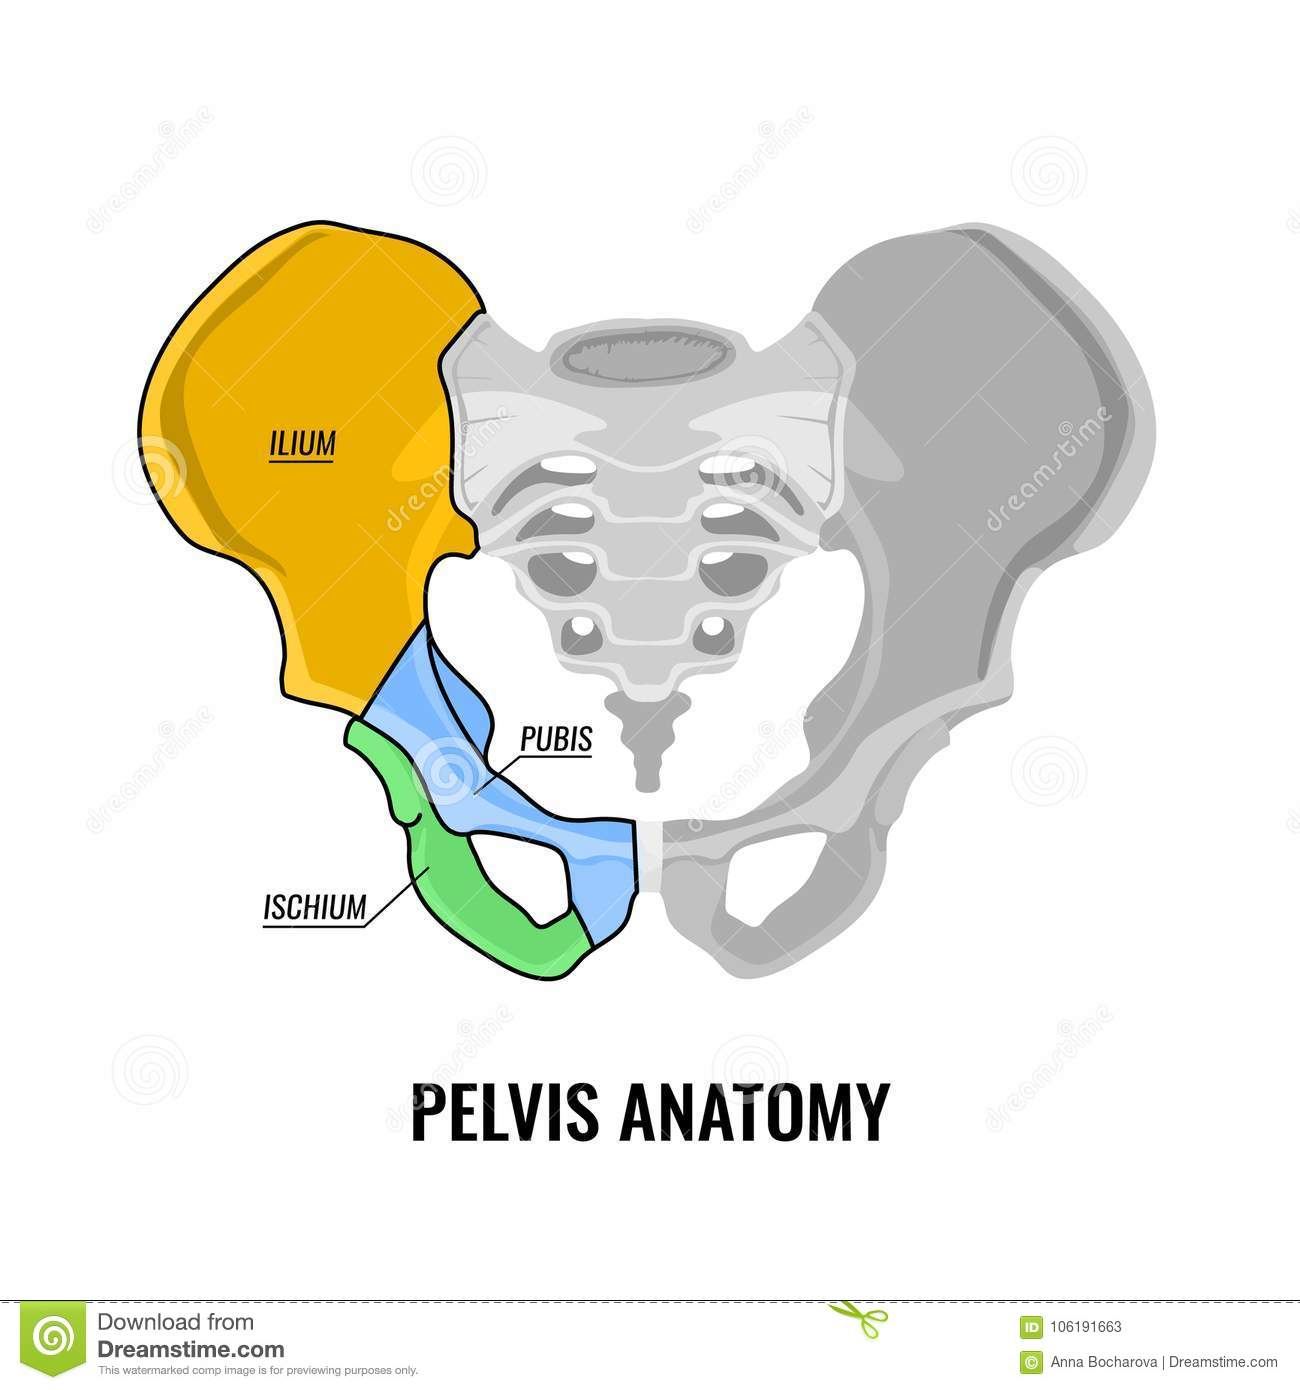 Pelvis Anatomy Scheme Stock Vector Illustration Of Femoral 106191663